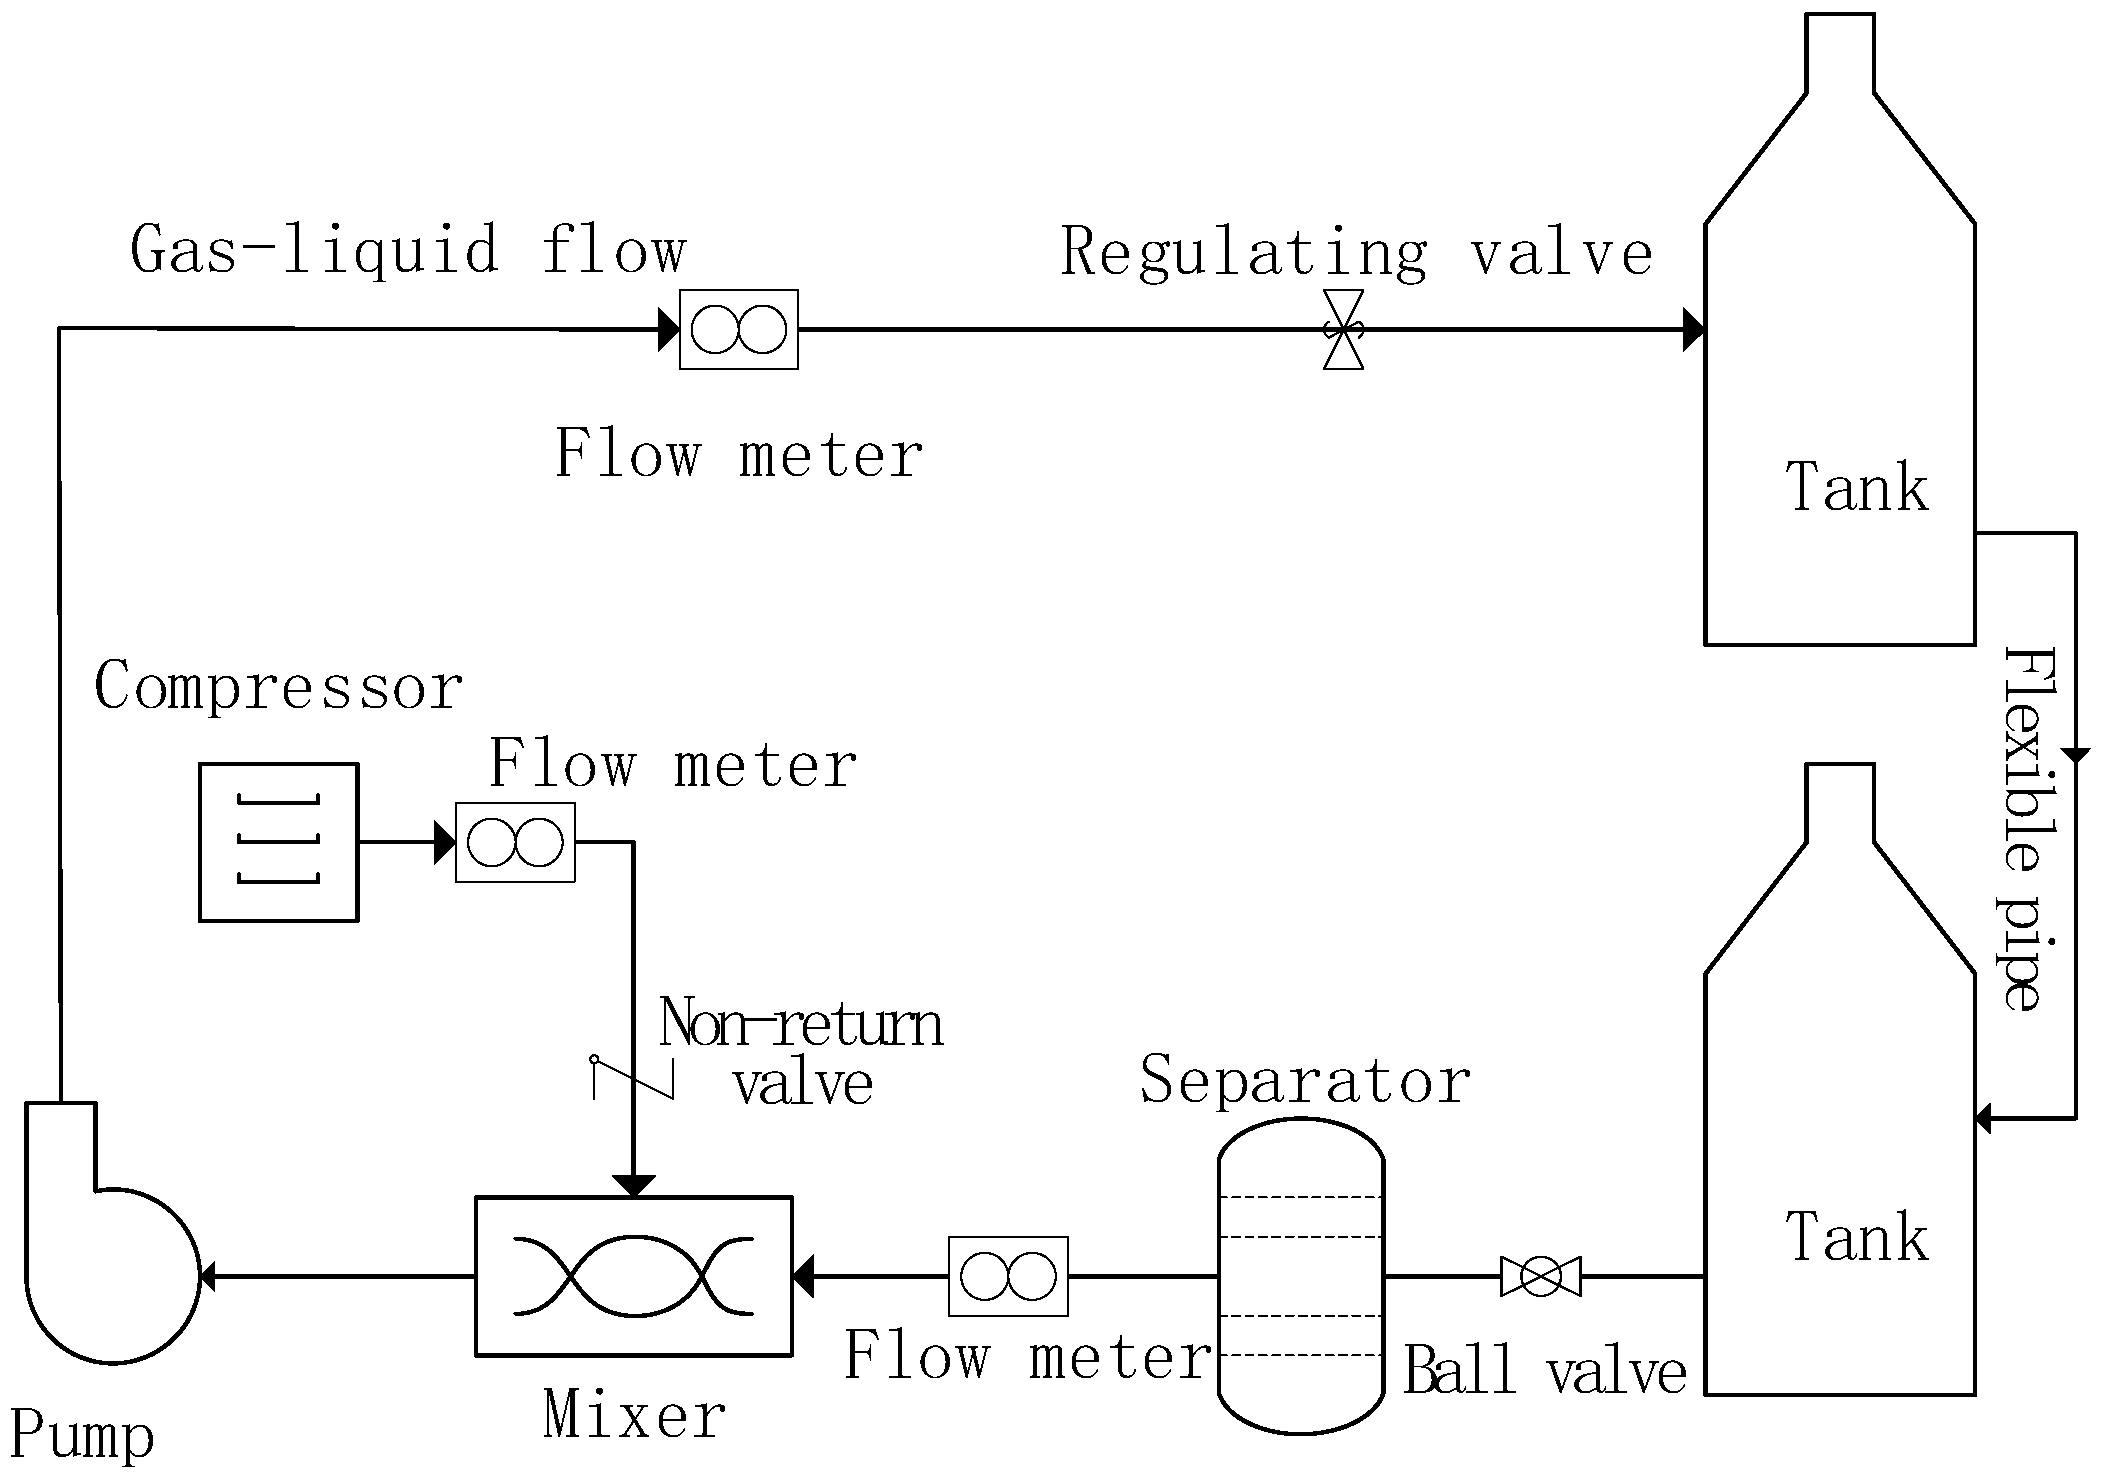 Energies | Free Full-Text | Investigation on the Handling Ability of on aquarium pump schematic, scroll pump schematic, pneumatic pump schematic, circulating pump schematic, axial pump schematic, diaphragm pump schematic, hydraulic pump schematic, multi-stage pump schematic, centrifugal water pumps, ejector pump schematic, spa pump schematic, geothermal heat pump schematic, self-priming pump schematic, fuel pump schematic, water pump schematic, submersible pump schematic, grundfos pump schematic, reciprocating pump schematic, mag drive pump schematic, plunger pump schematic,